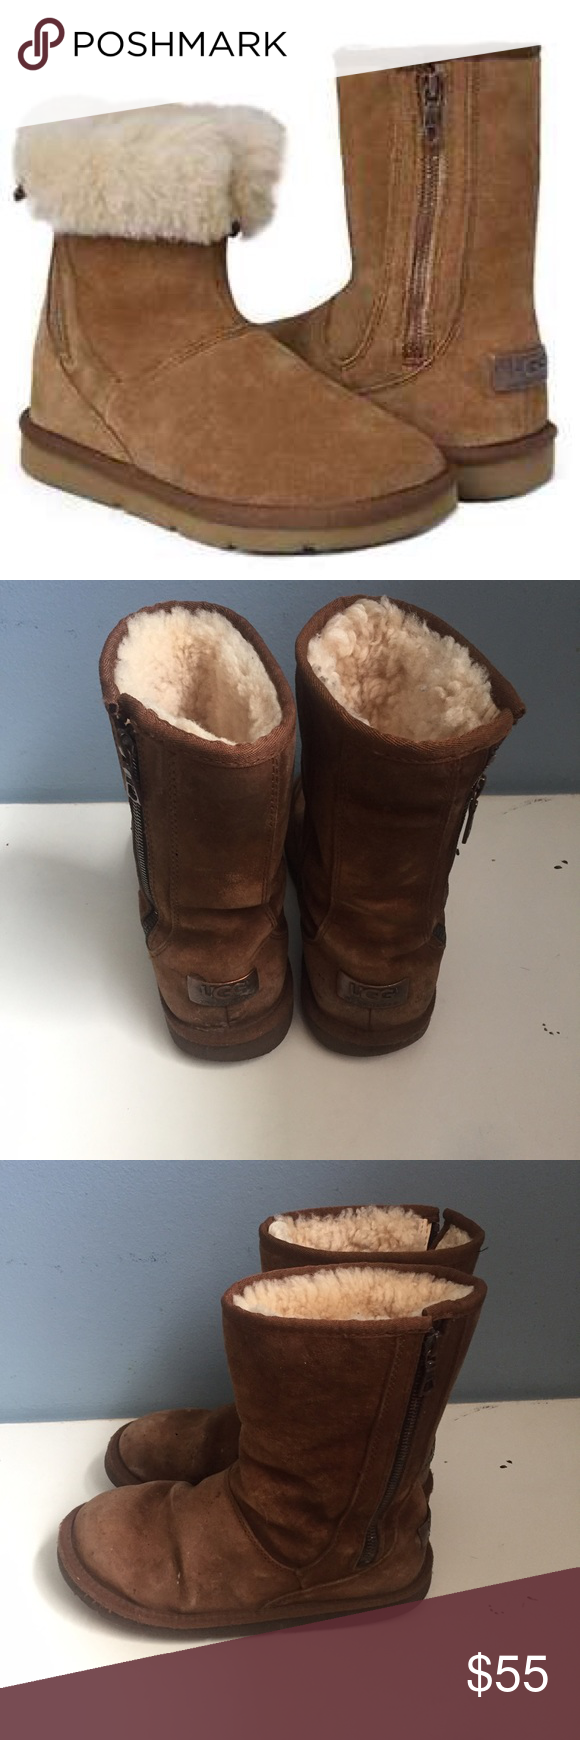 Mayfaire UGG boots Women's mayfaire ugg boots. S/N 5116 in fair condition. Great deal UGG Shoes